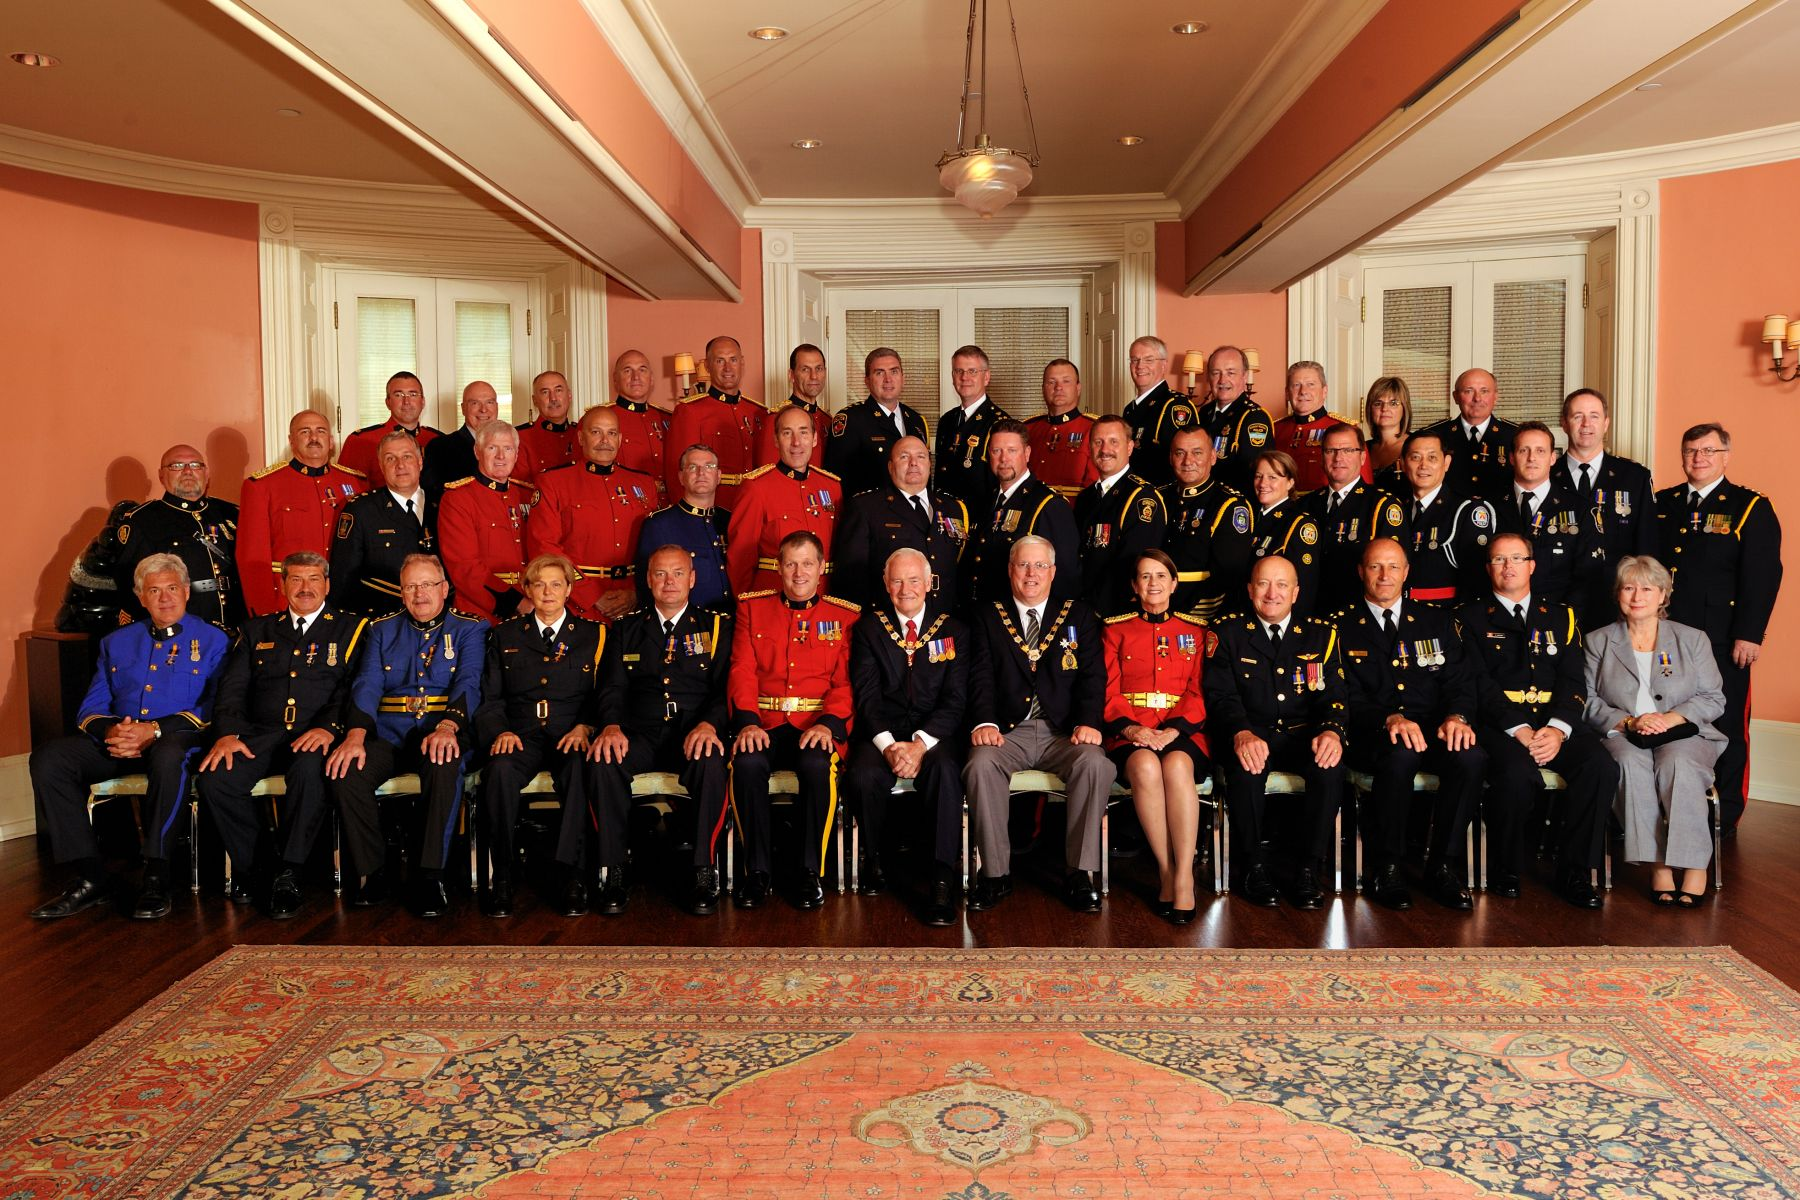 His Excellency and Commissioner Elliott are pictured with the 43 recipients who were invested into the Order of Merit of the Police Forces on June 8, 2011.